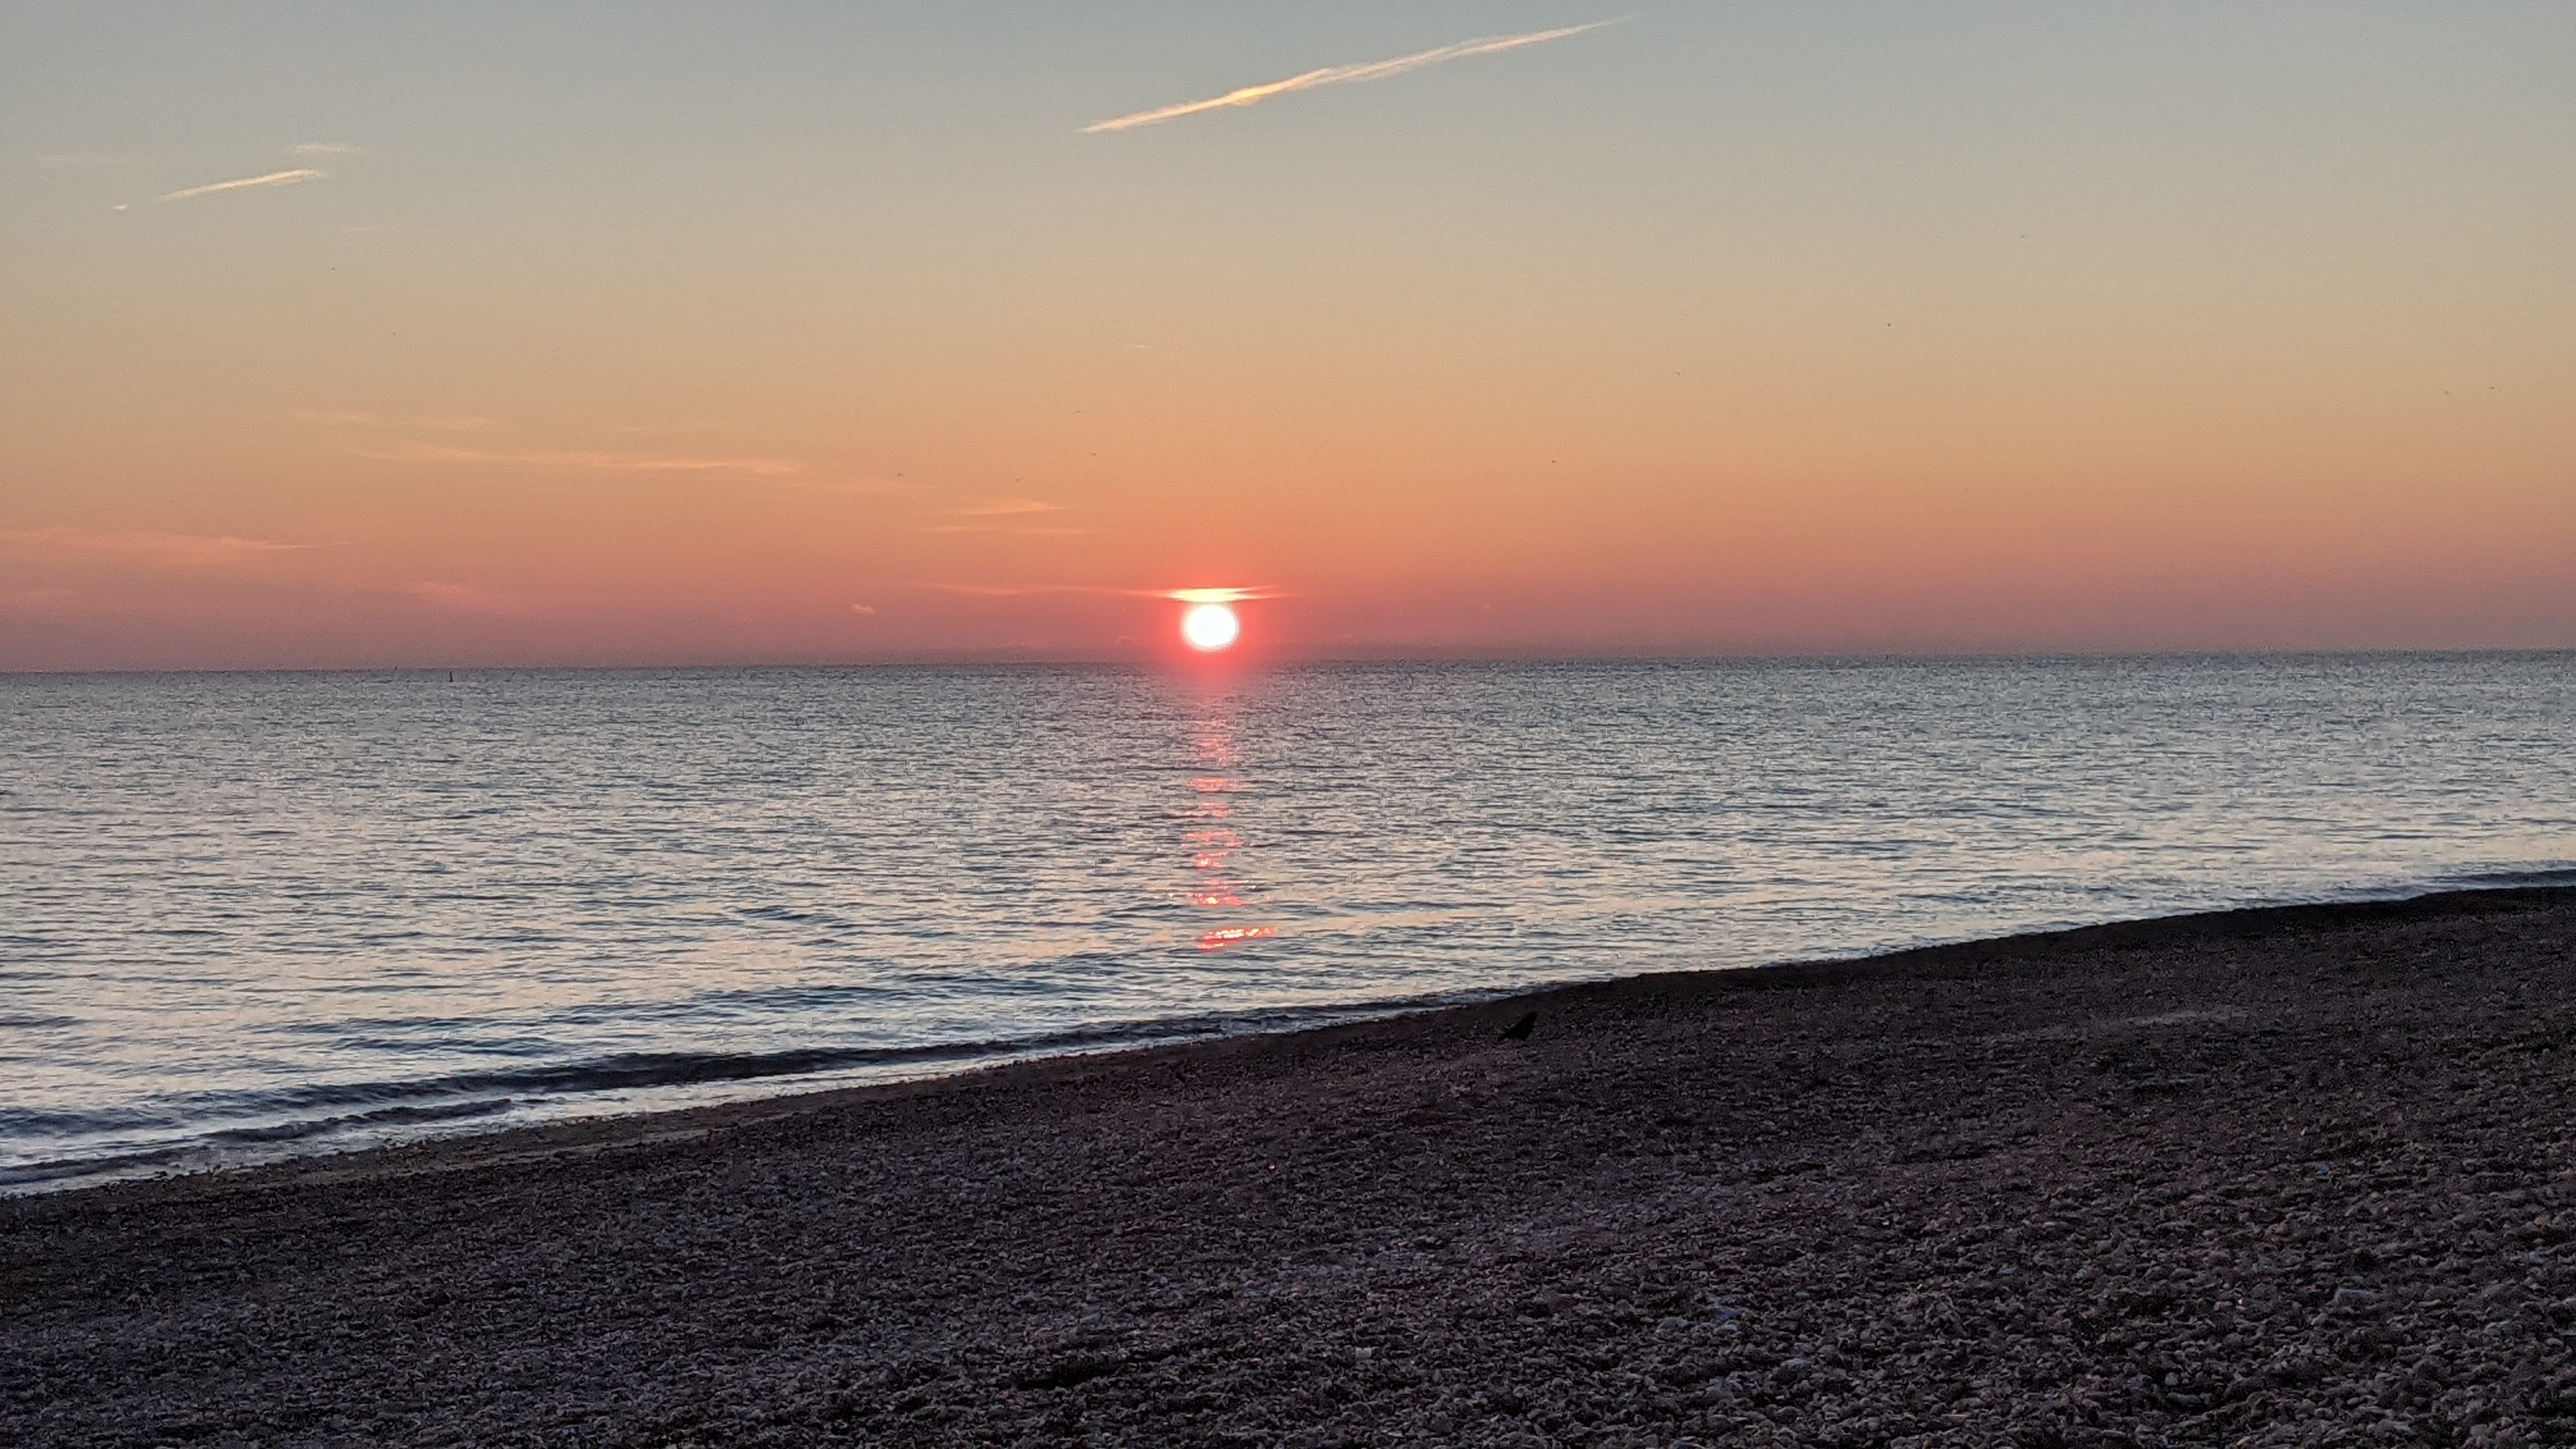 Sun setting over the sea with shingle in the foreground and the town of Worthing in the distance.